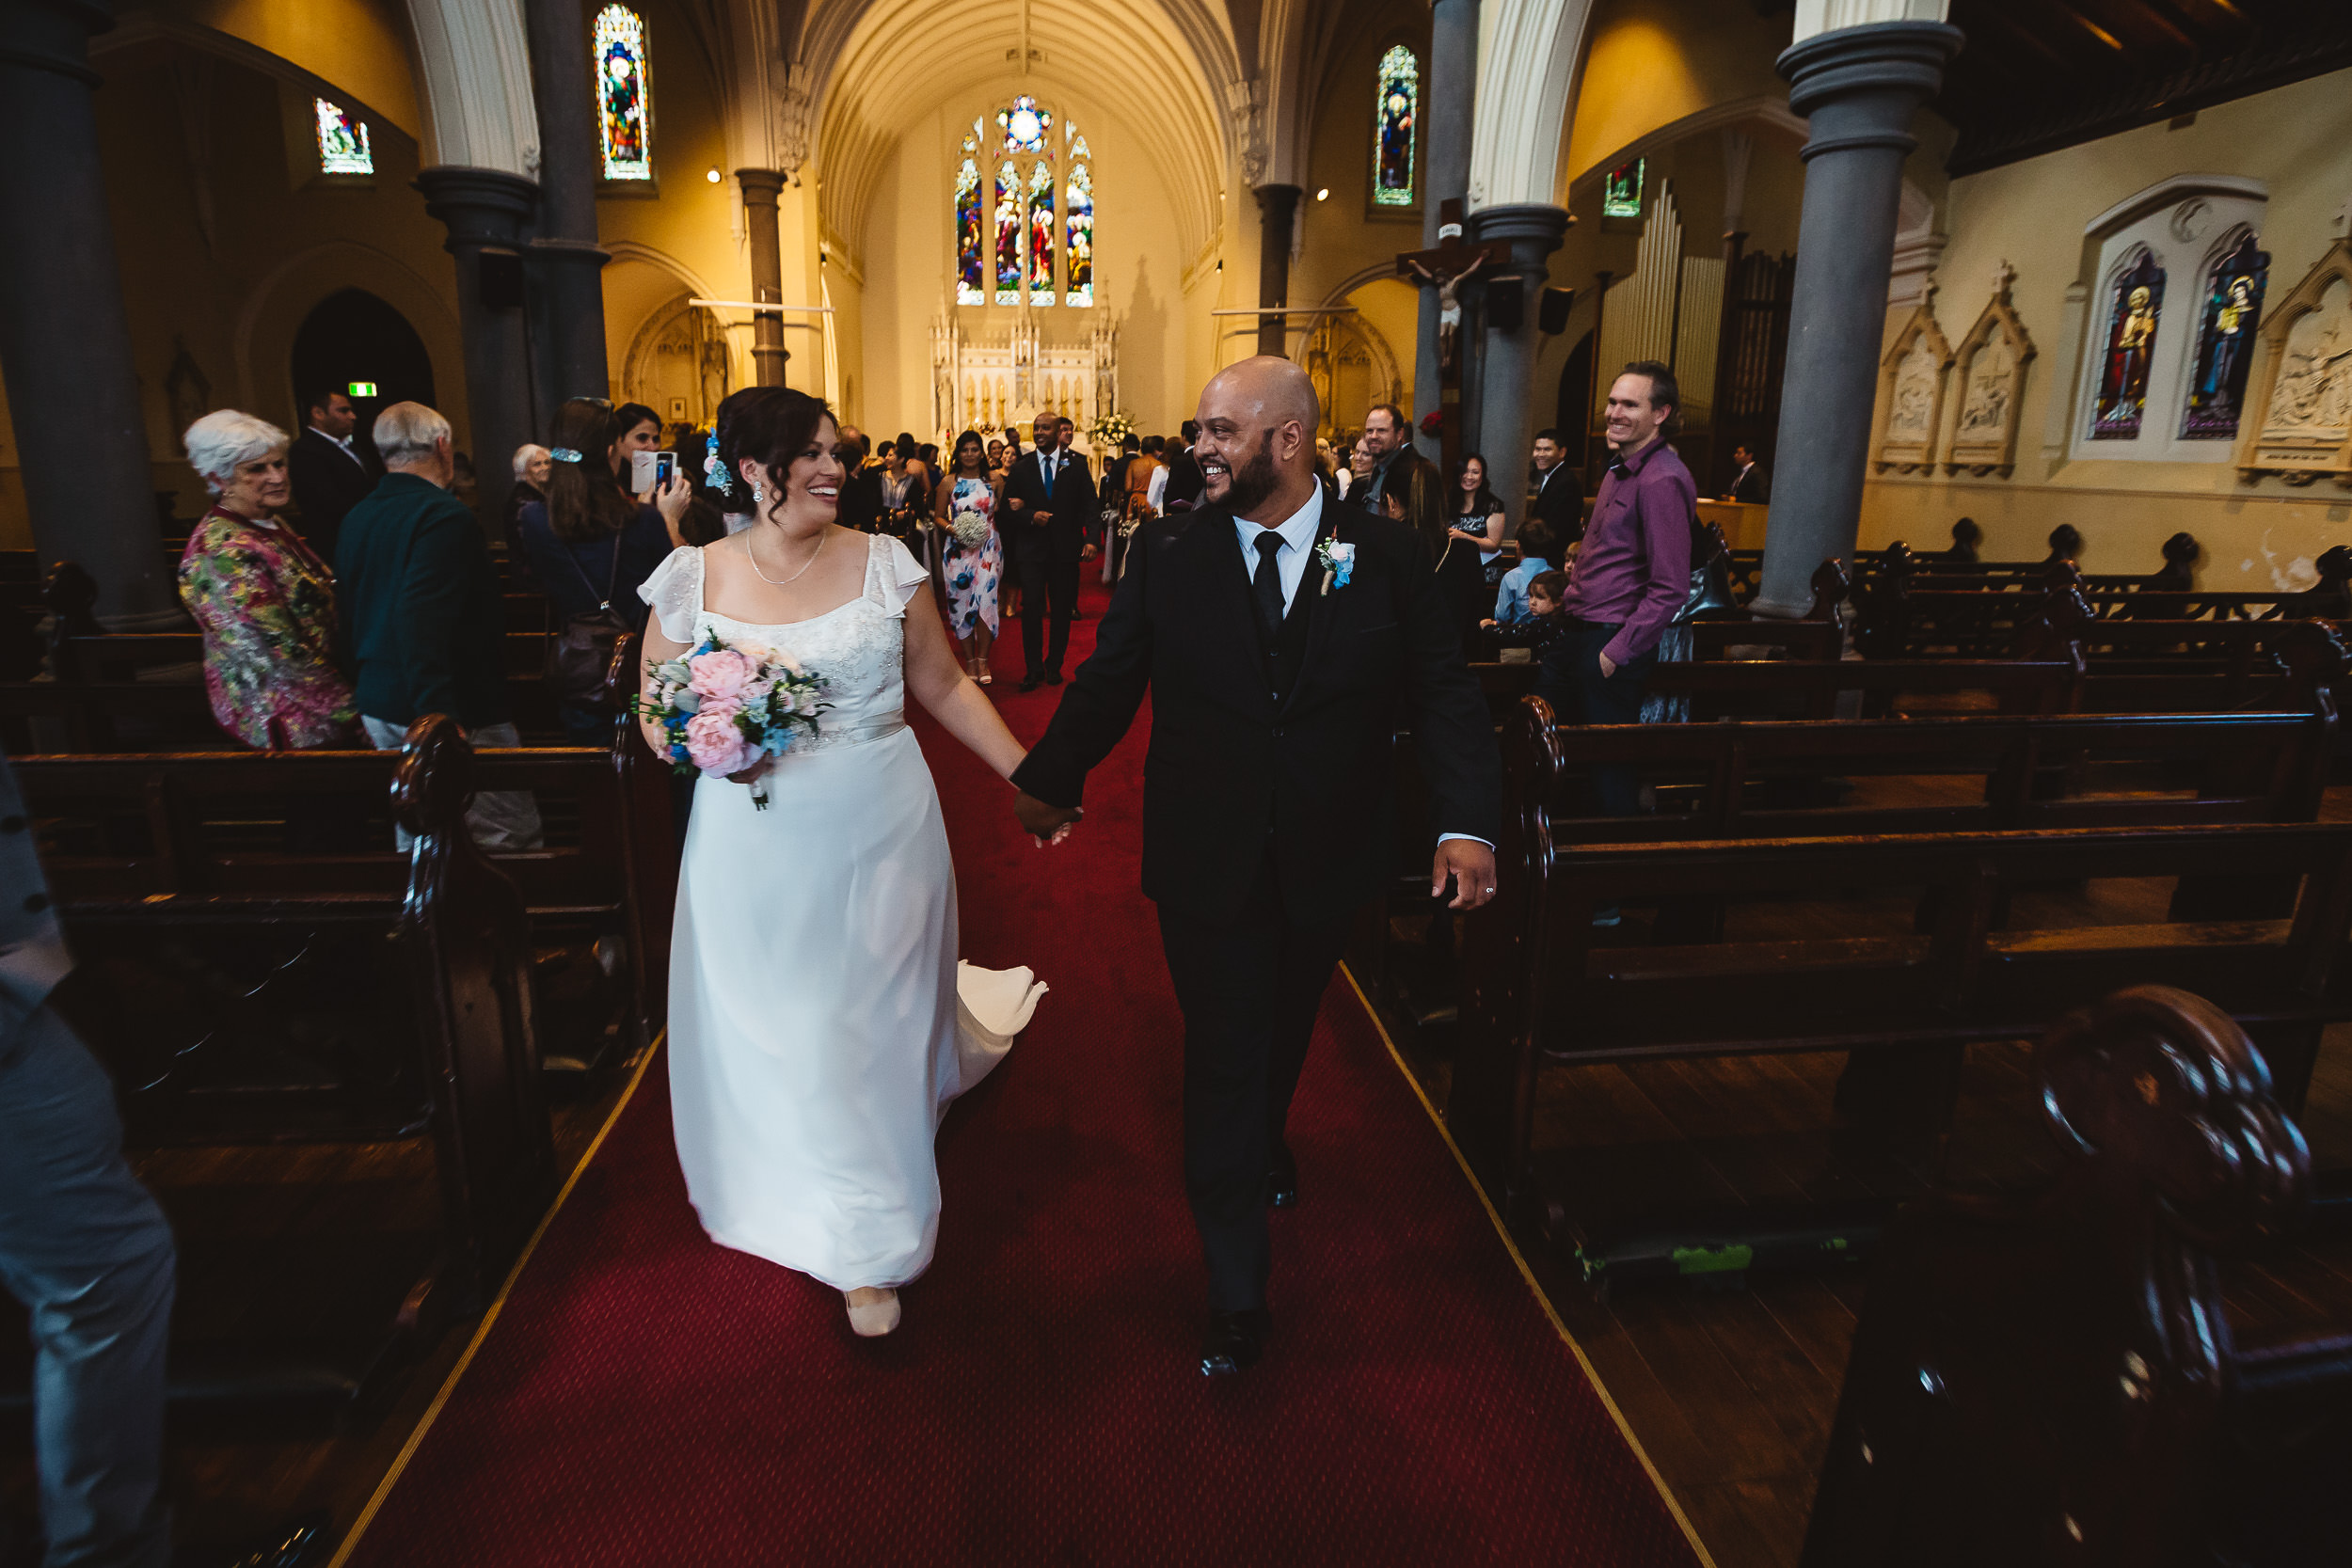 Melbourne-Wedding-Photographer-1049.jpg